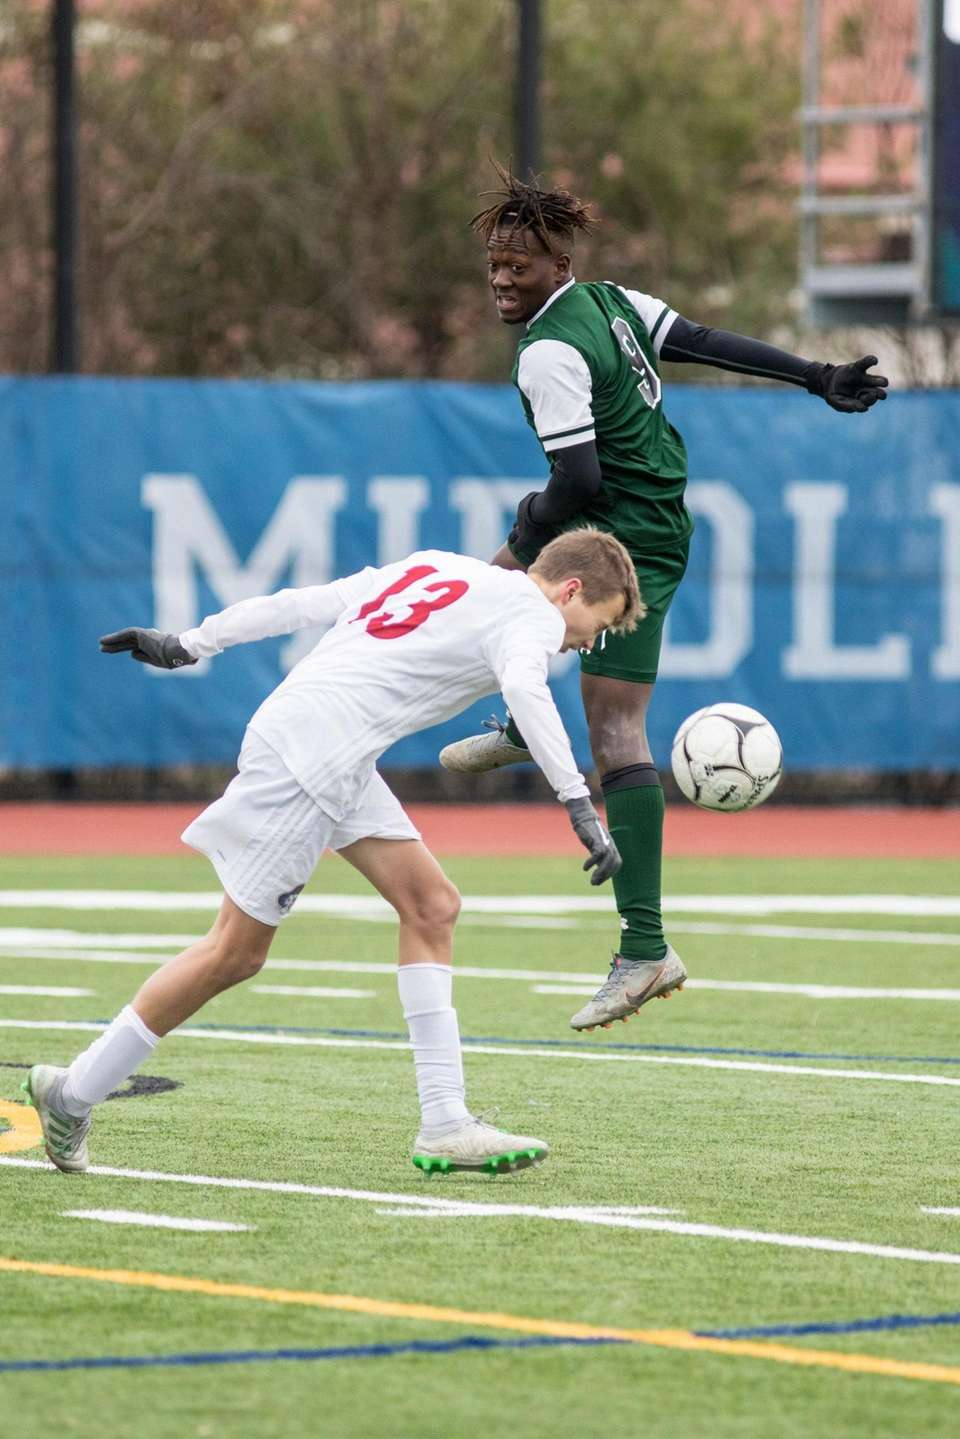 Fairport's Aidan Fish, left and Brentwood's Nathaniel Austin,